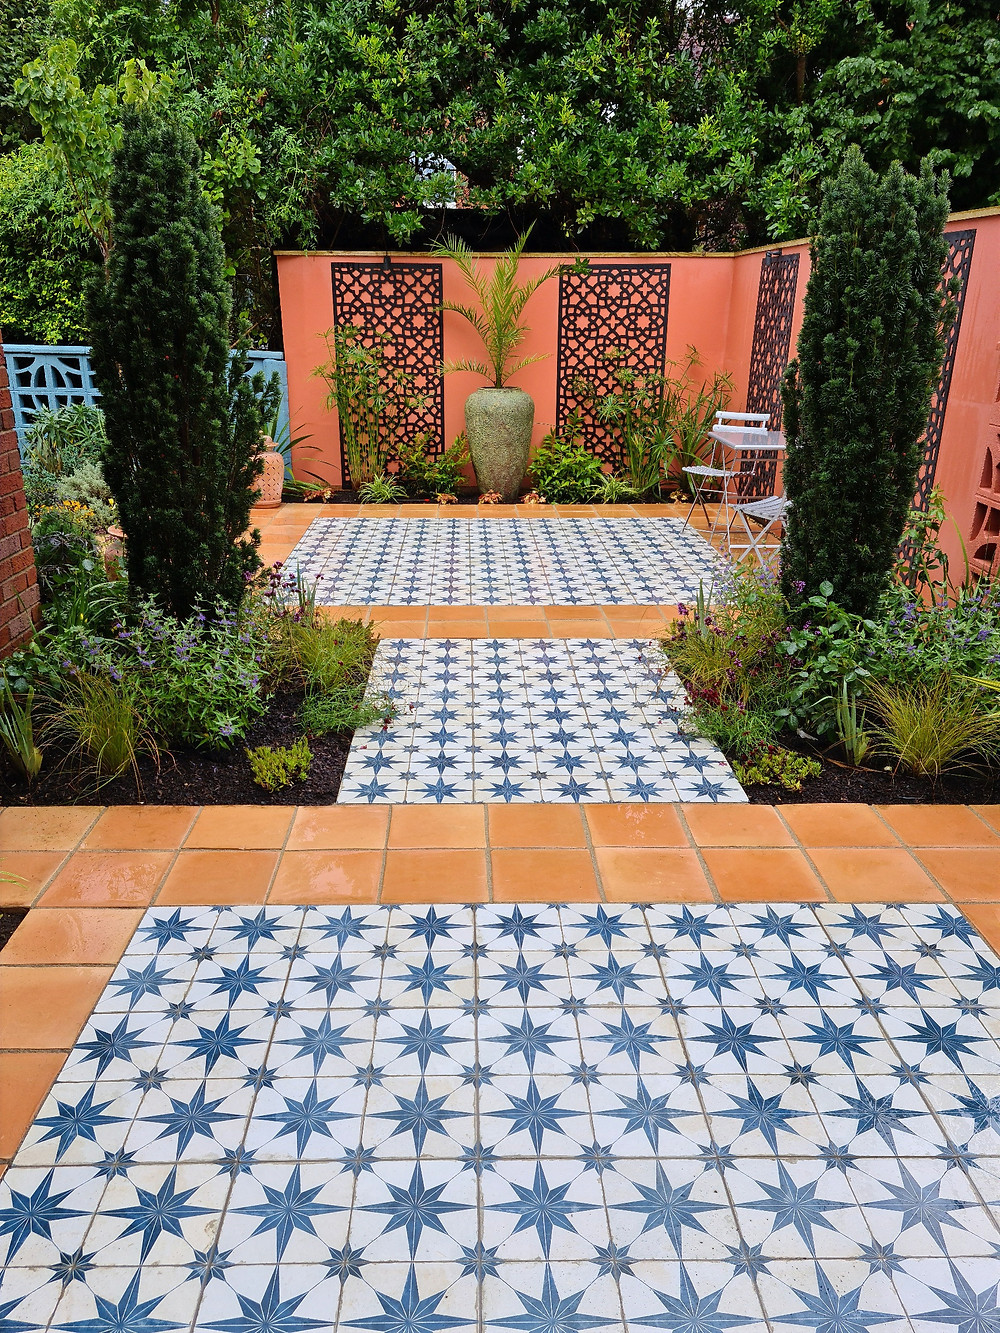 Magical Moroccan Courtyard Garden